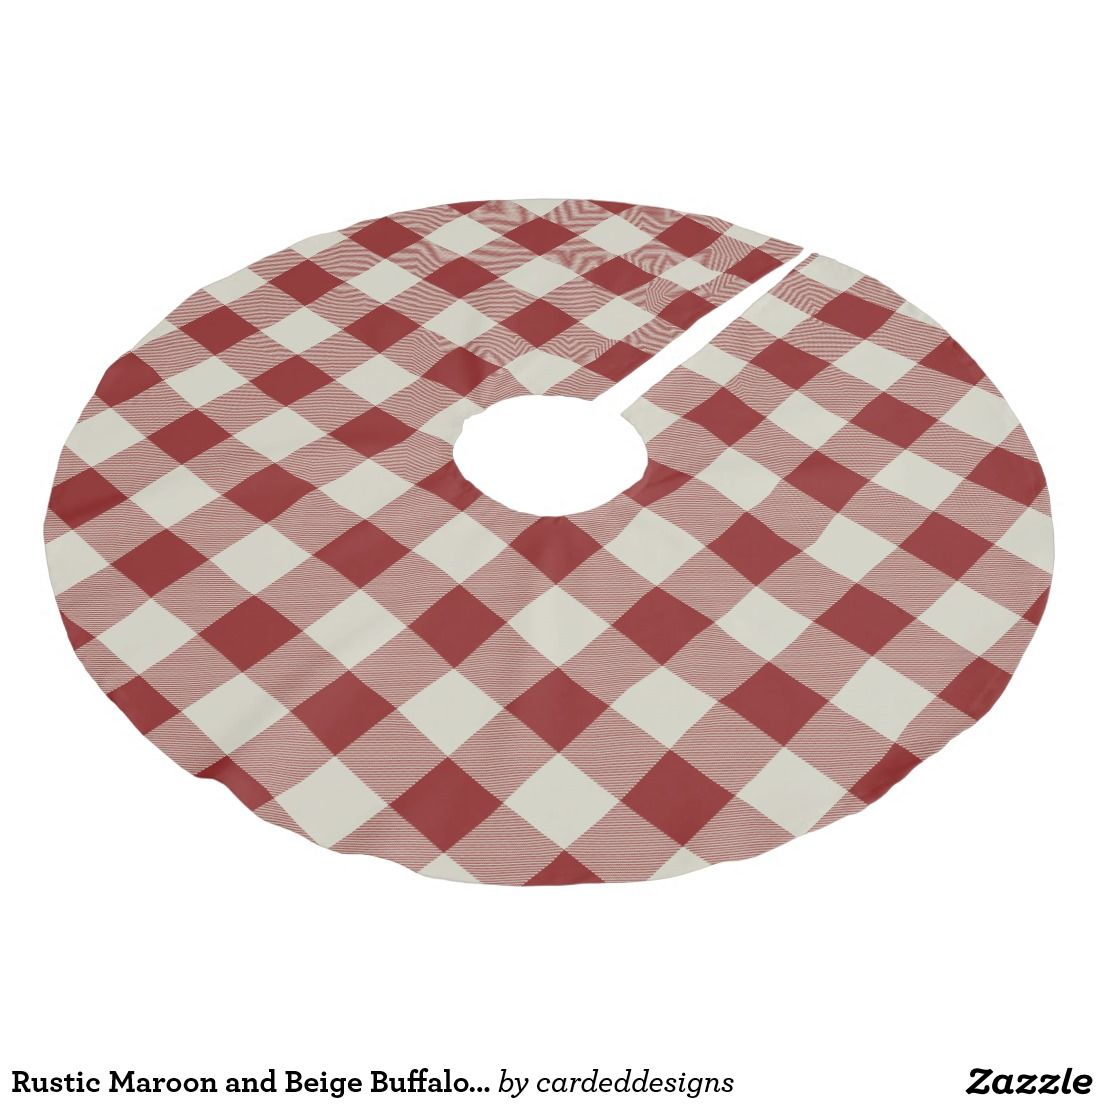 Rustic Maroon and Beige Buffalo Check Plaid Brushed Polyester Tree Skirt